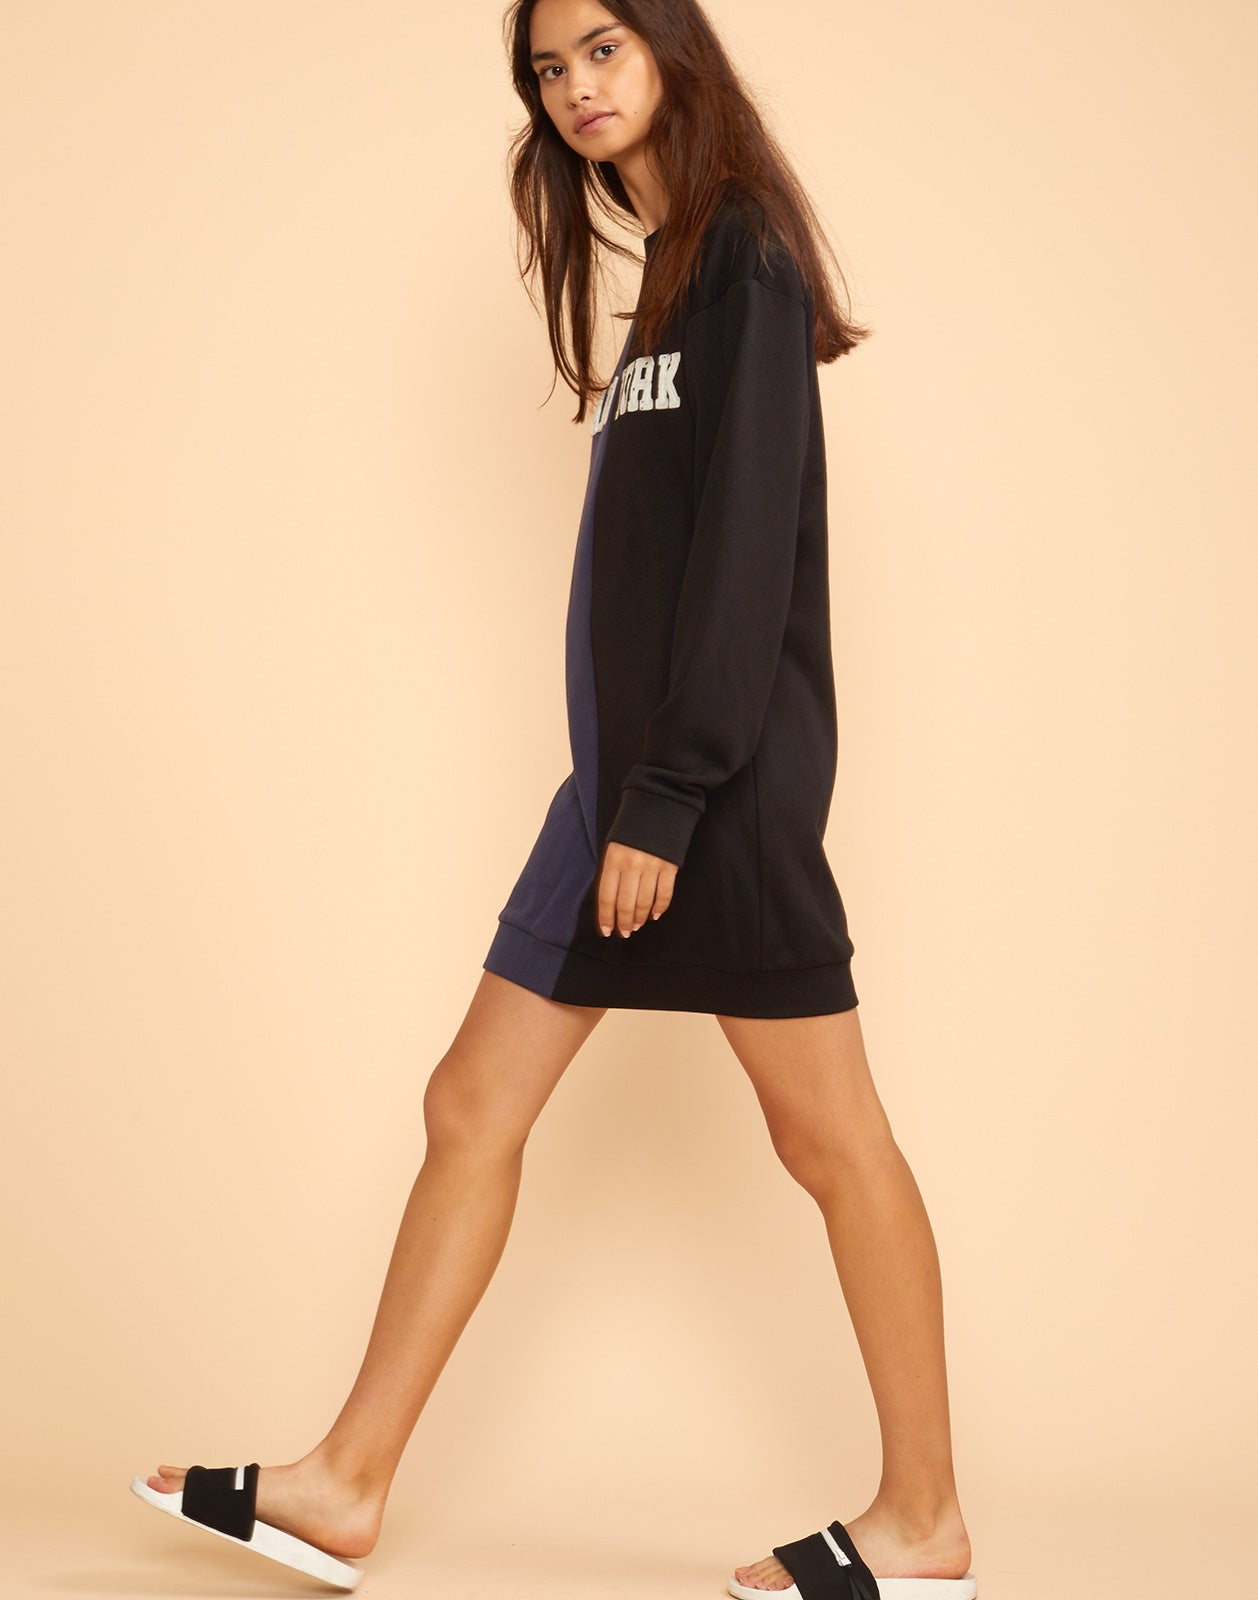 Side view of the Caliyork sweatshirt dress in half navy half black.